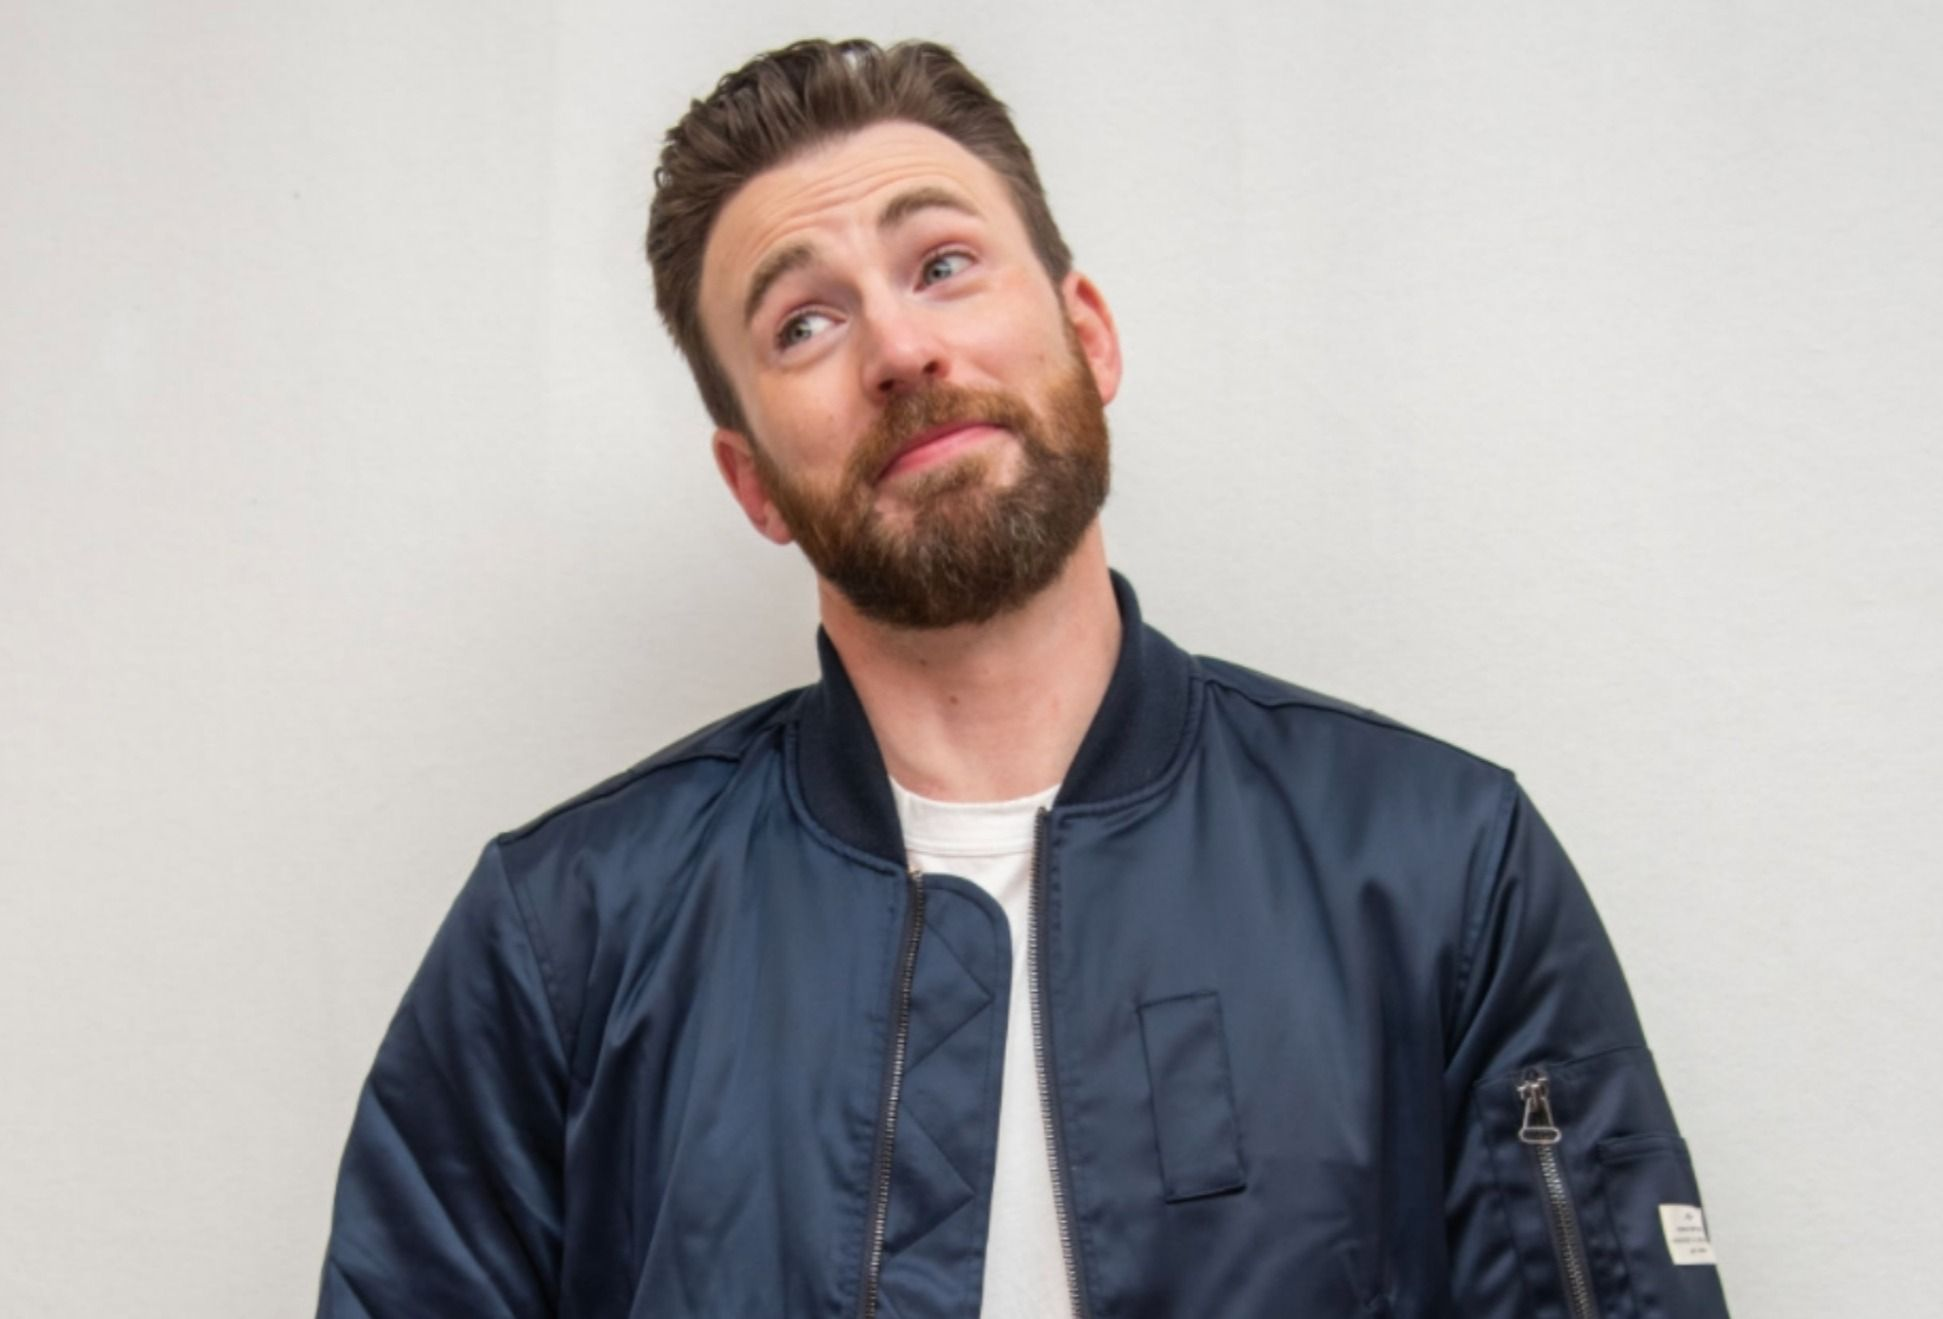 """""""chris-evans-breaks-his-silence-on-that-private-pic-he-leaked-by-accident-uses-the-incident-in-the-best-way"""""""